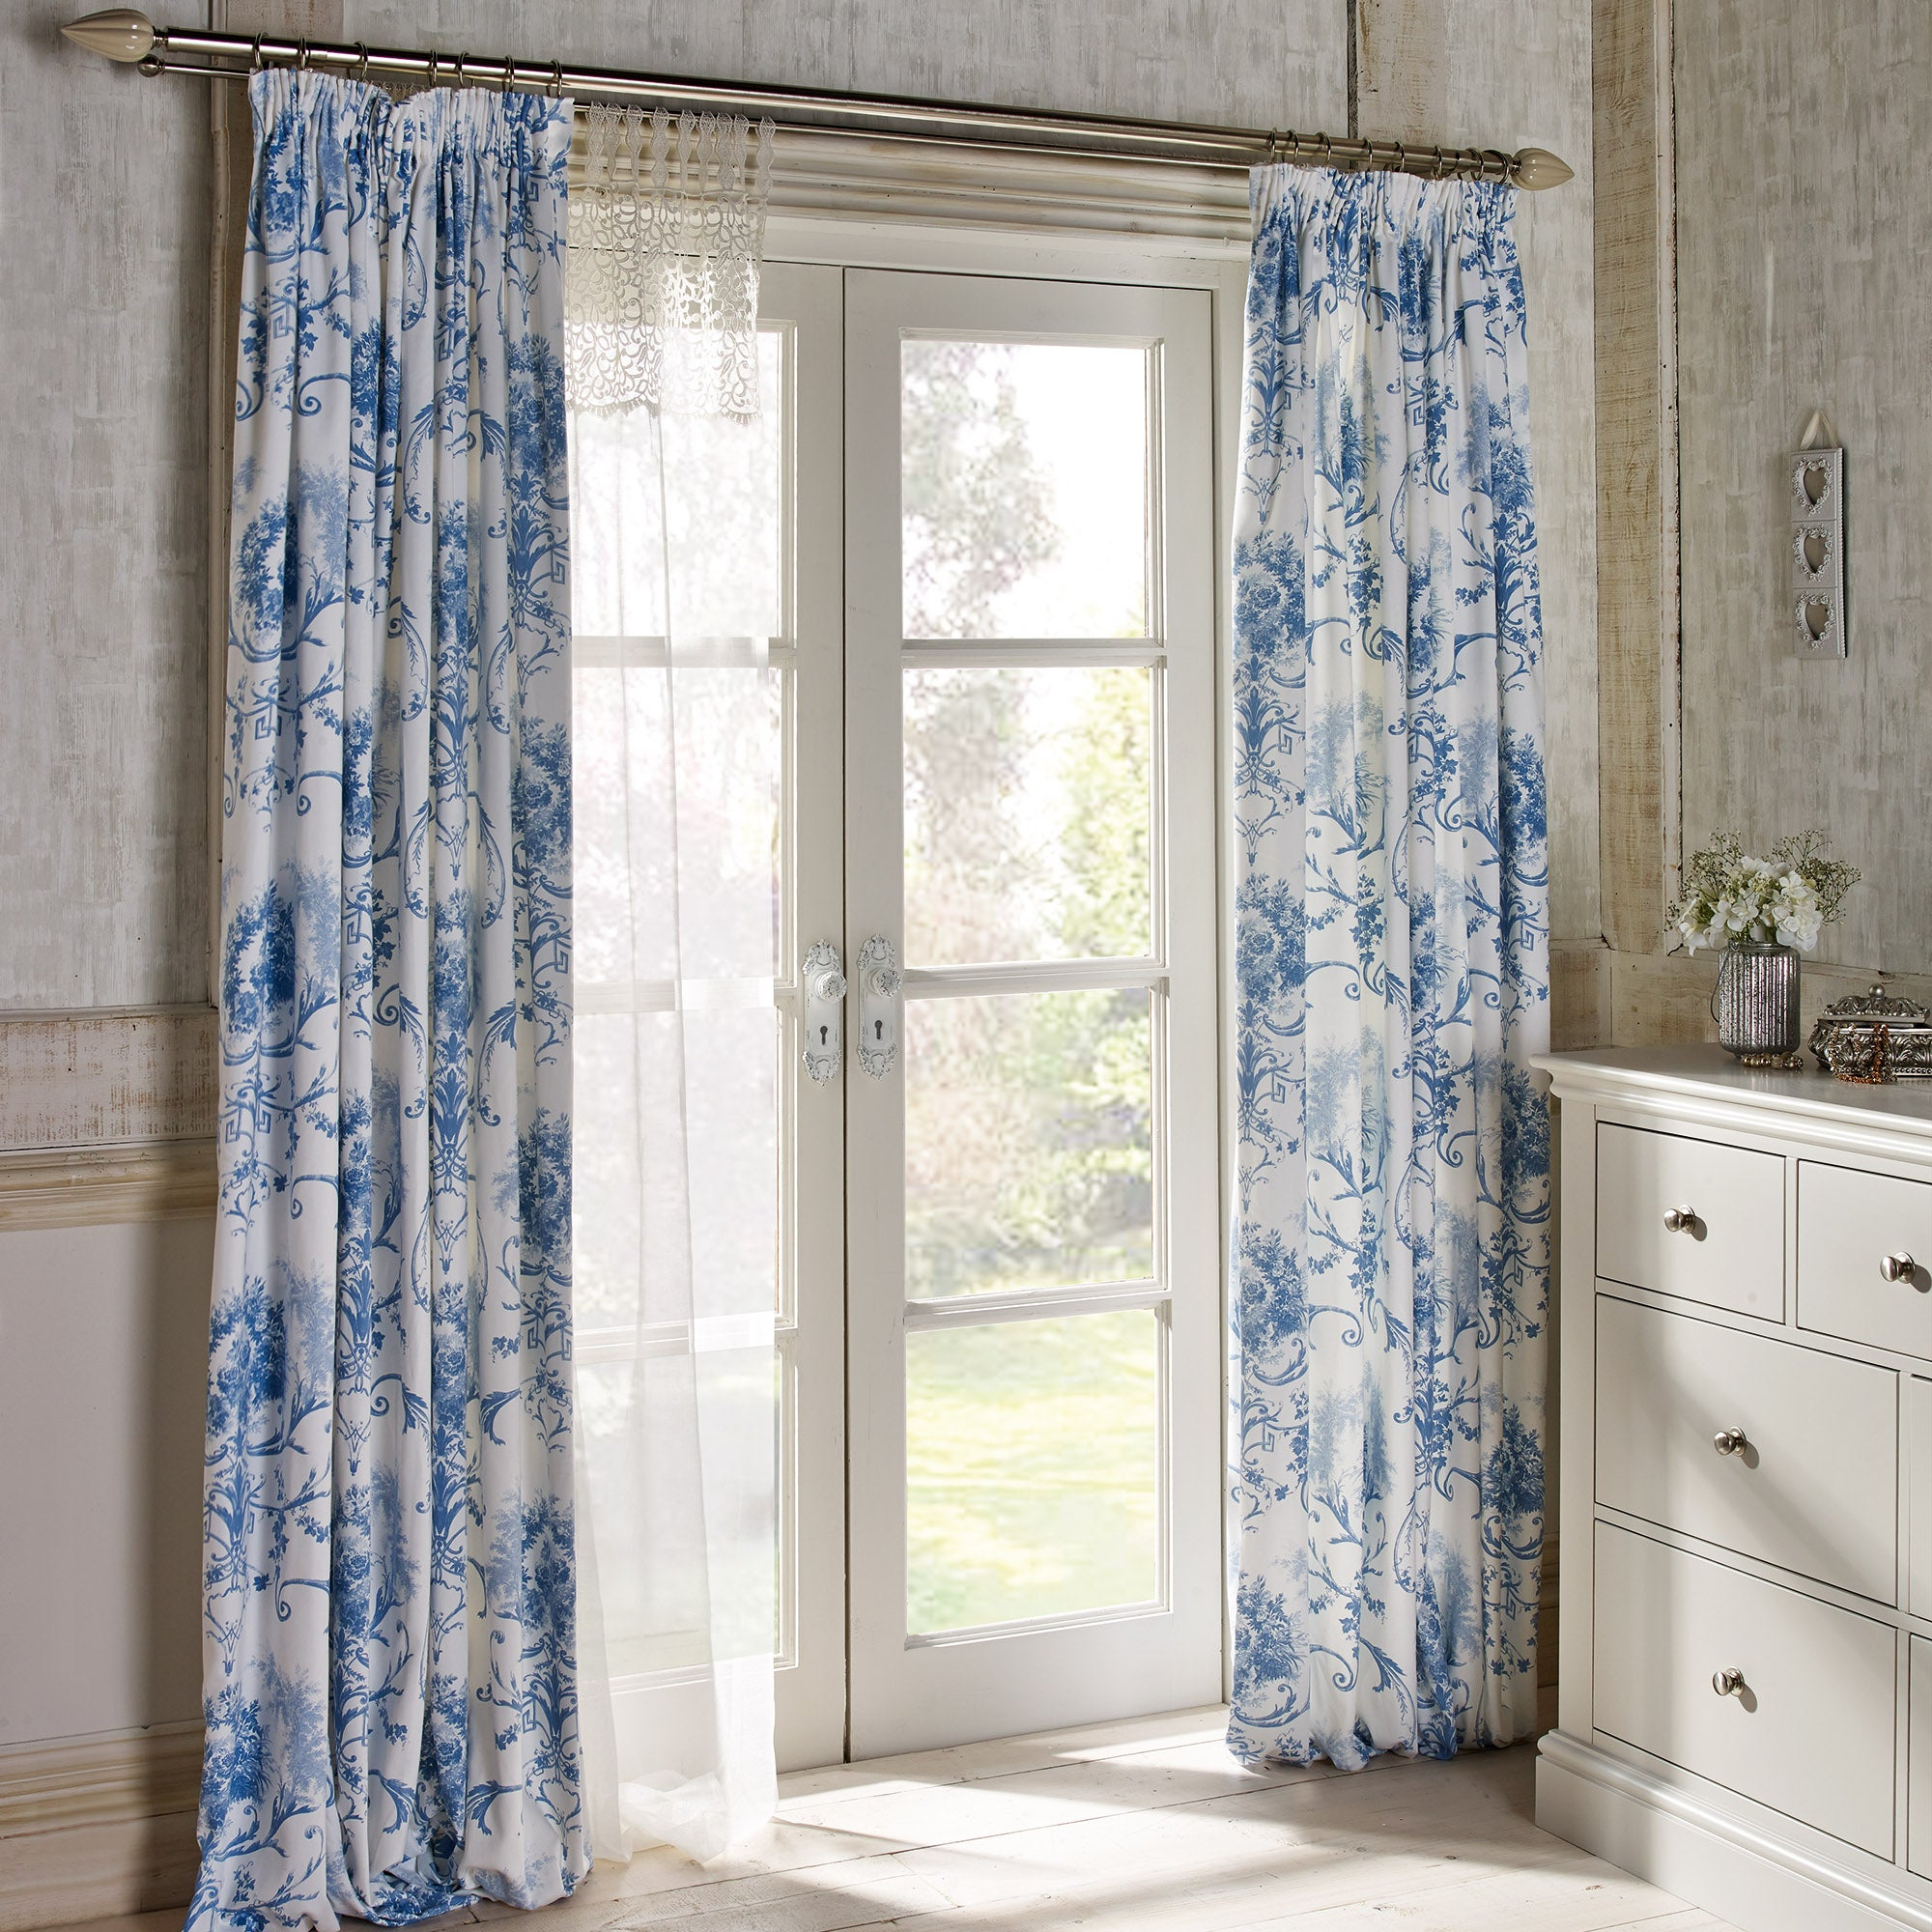 Dorma Blue Toile Lined Pencil Pleat Curtains